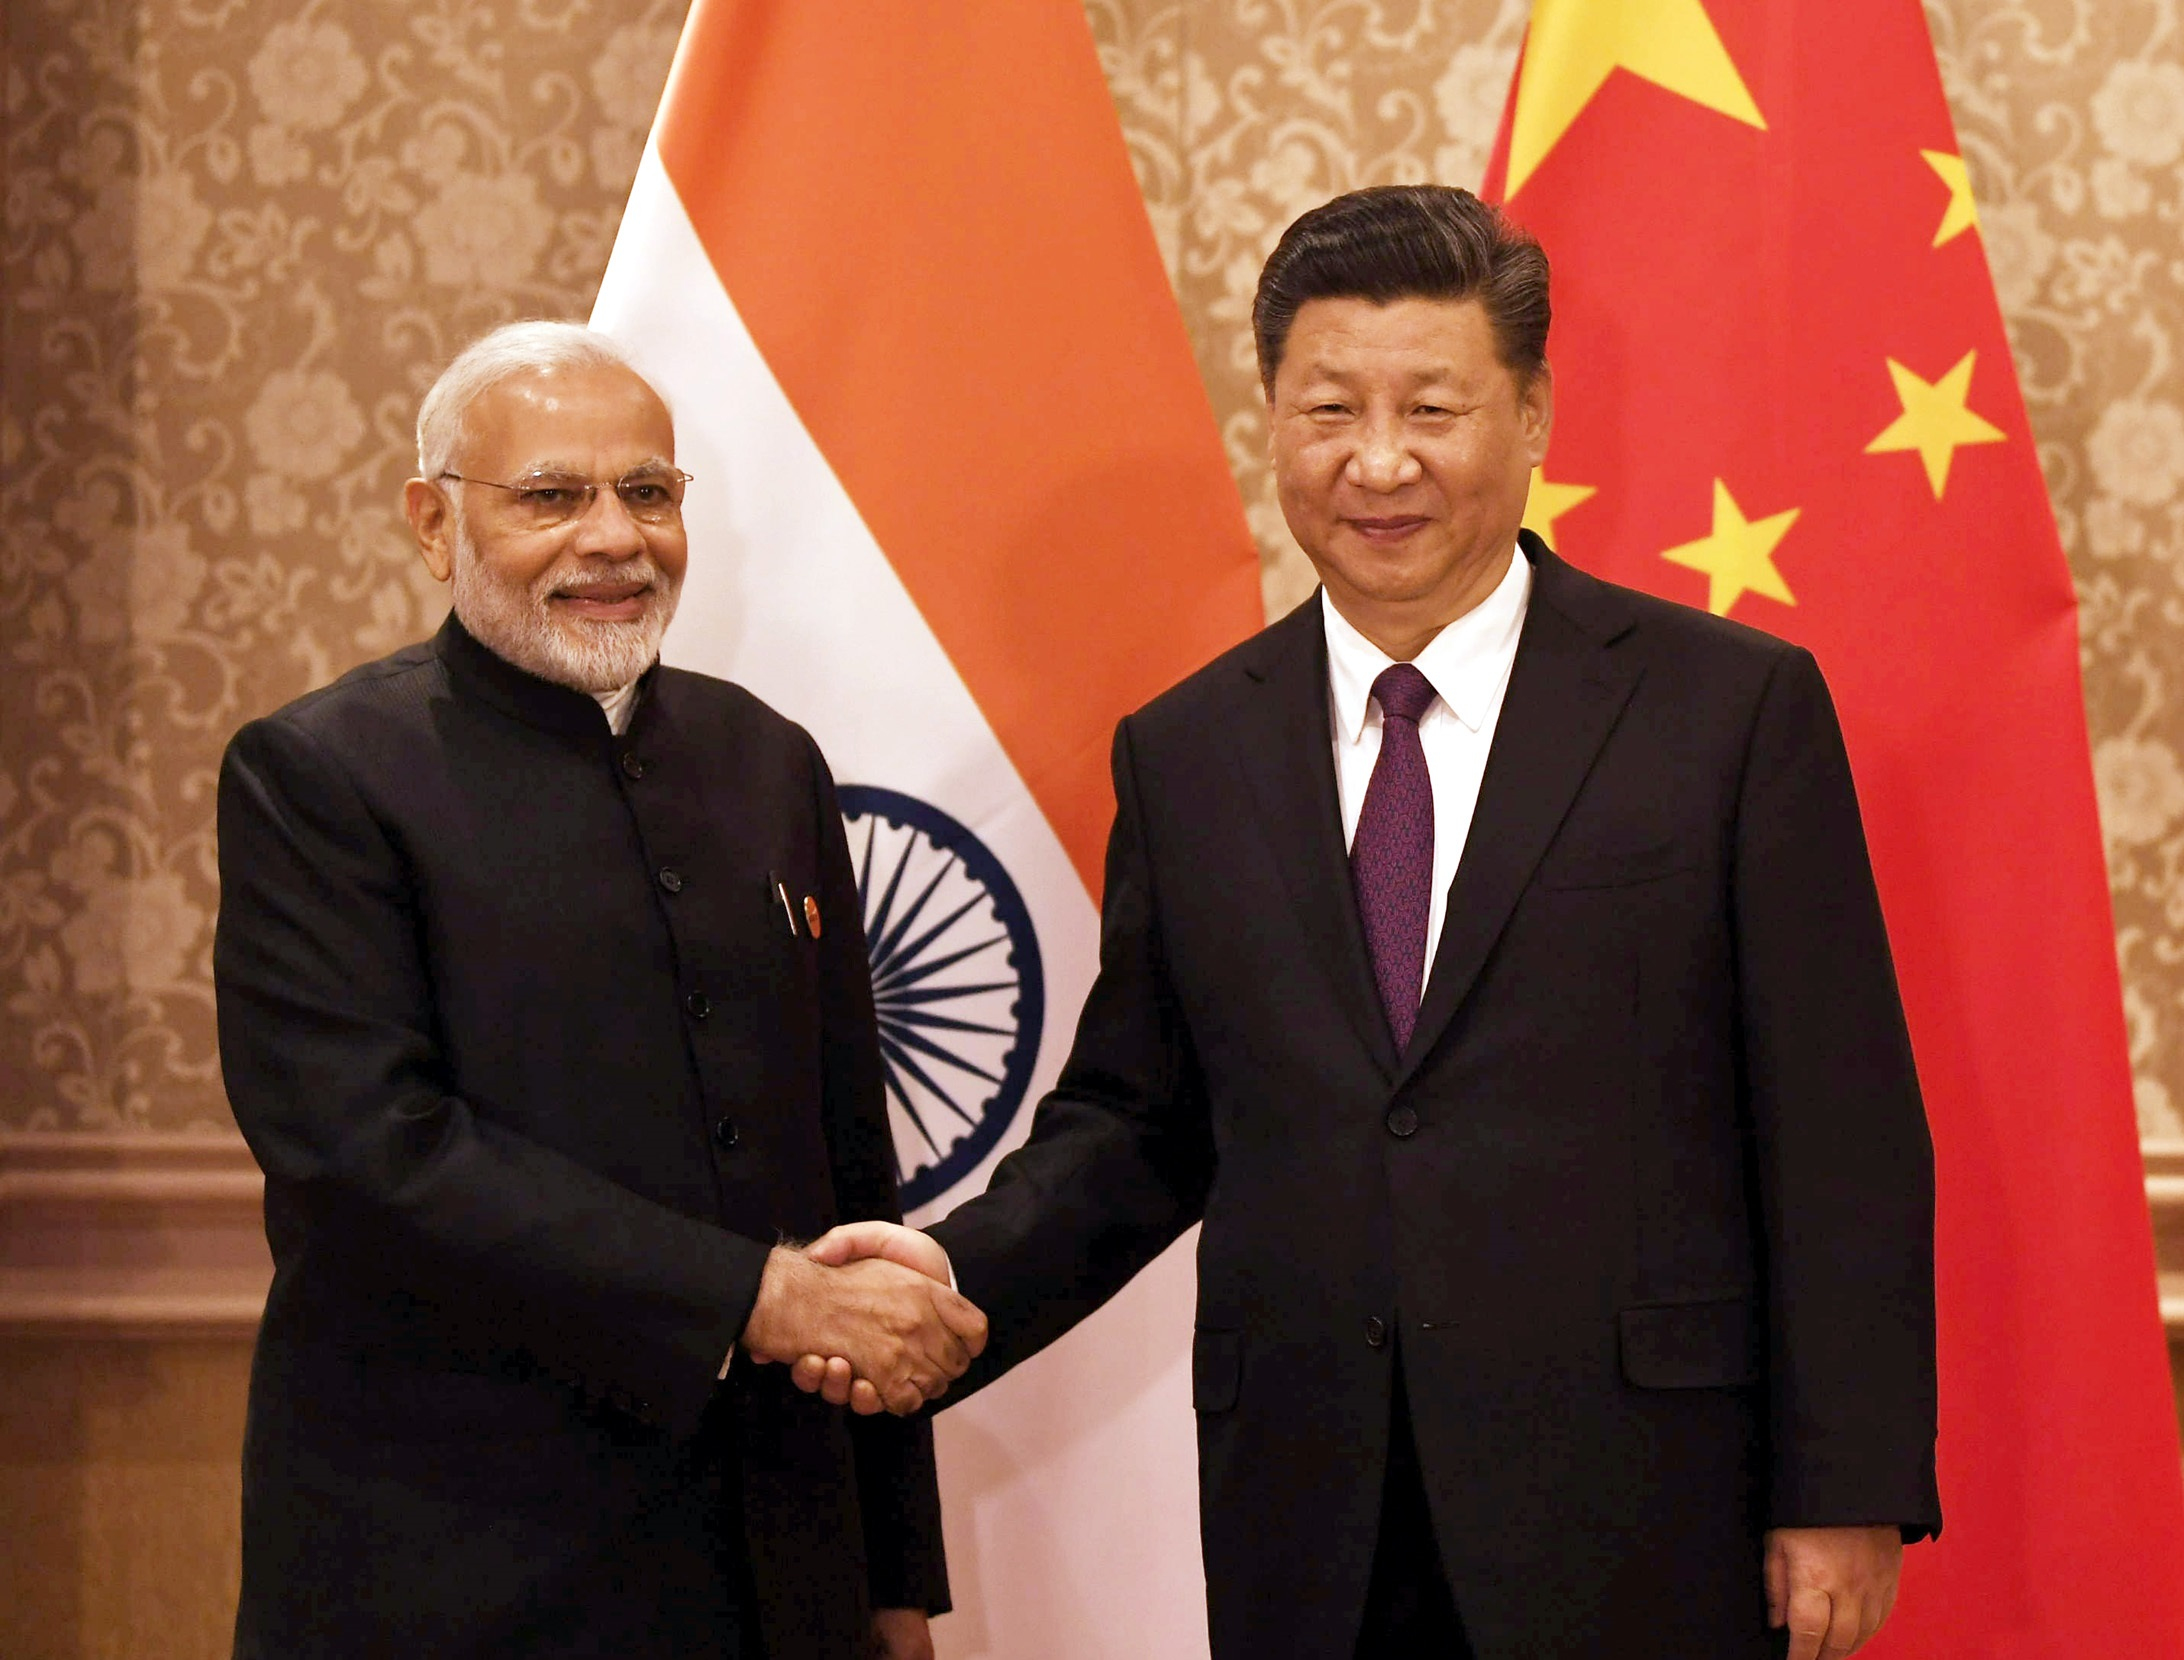 The Prime Minister, Shri Narendra Modi in a bilateral meeting with the President of China, Xi Jinping, on the sidelines of the BRICS Summit, in Johannesburg, South Africa on July 26, 2018.